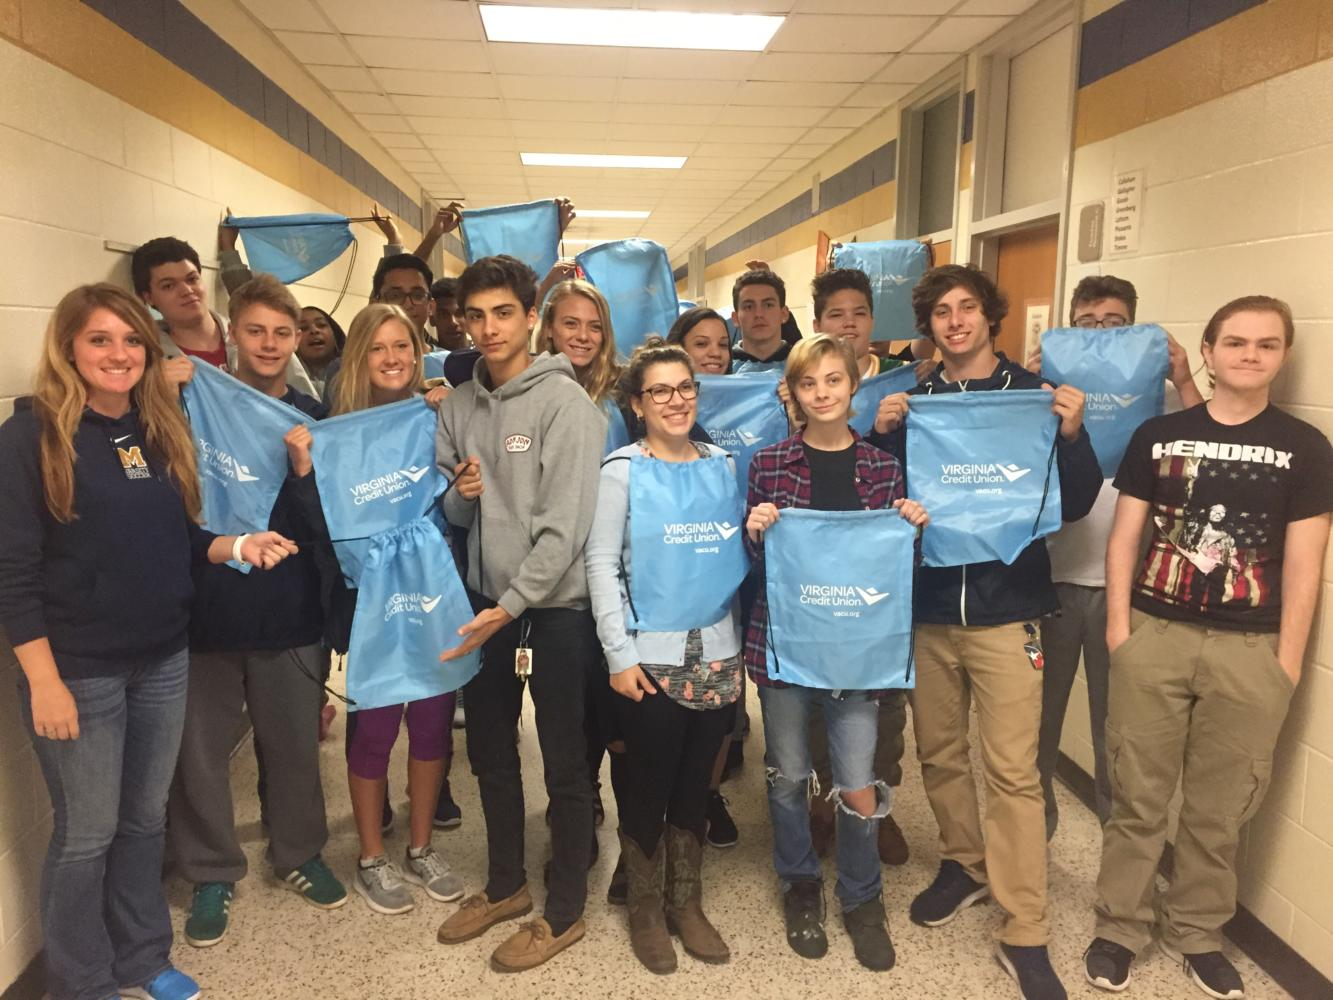 Ms. Kramer's class shows off their drawstring bags from Virginia Credit Union.